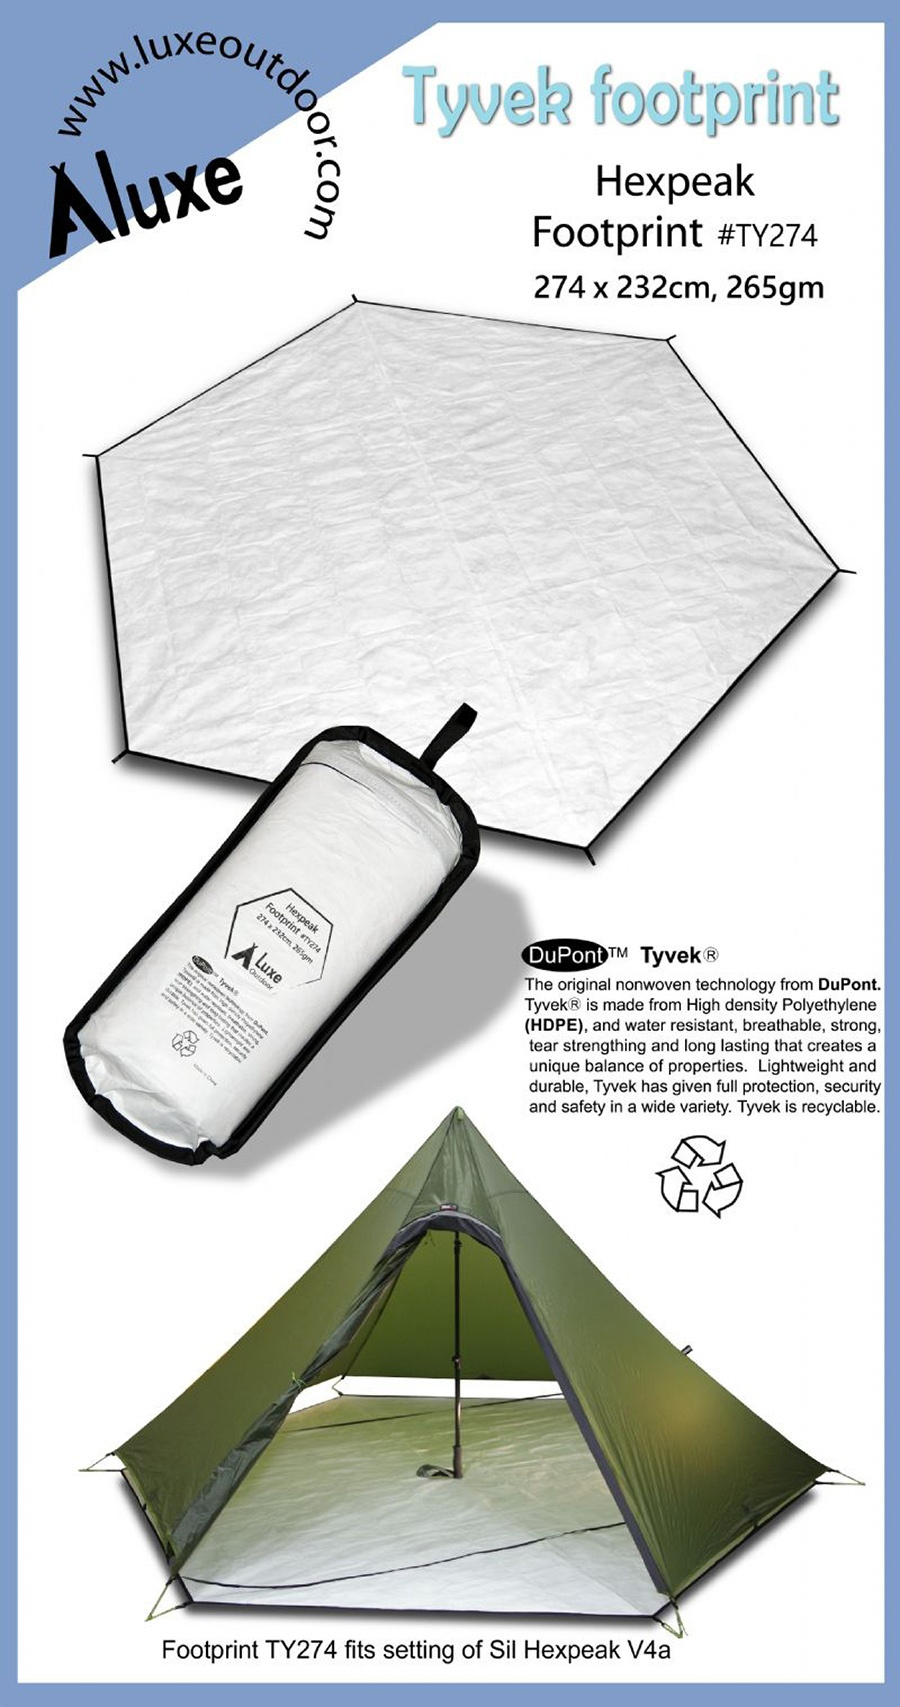 luxe_tyvek_footprint_hexpeak_2